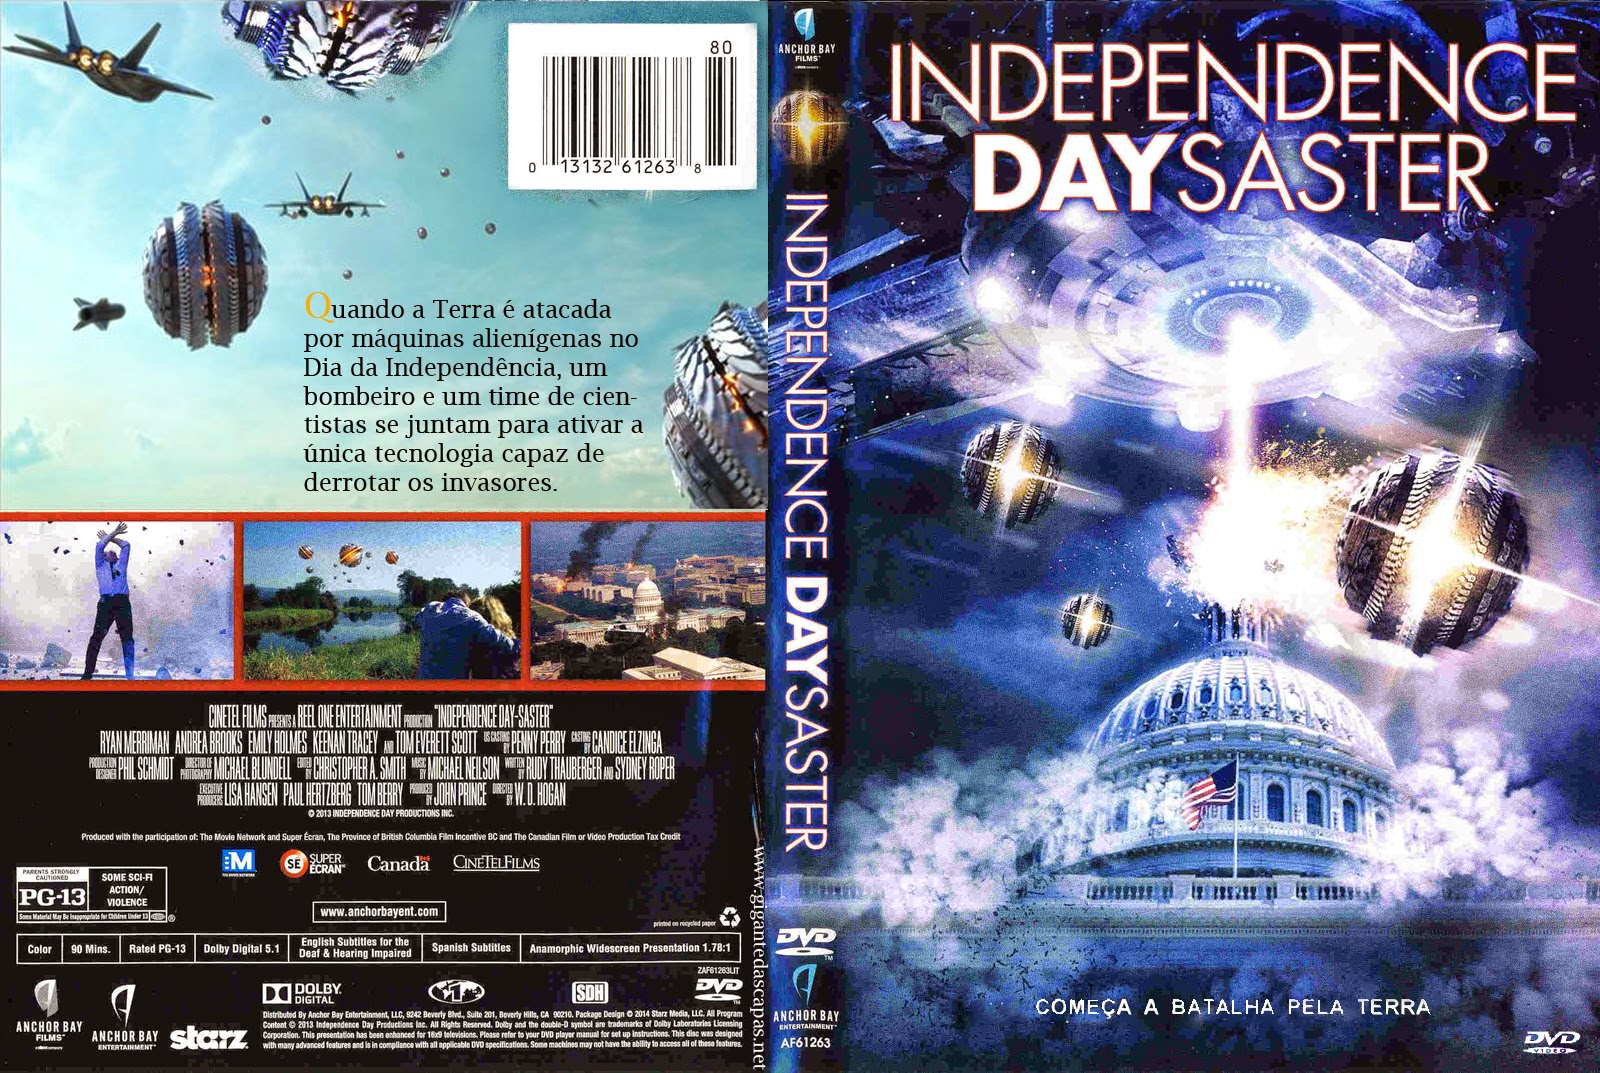 Independence Day saster